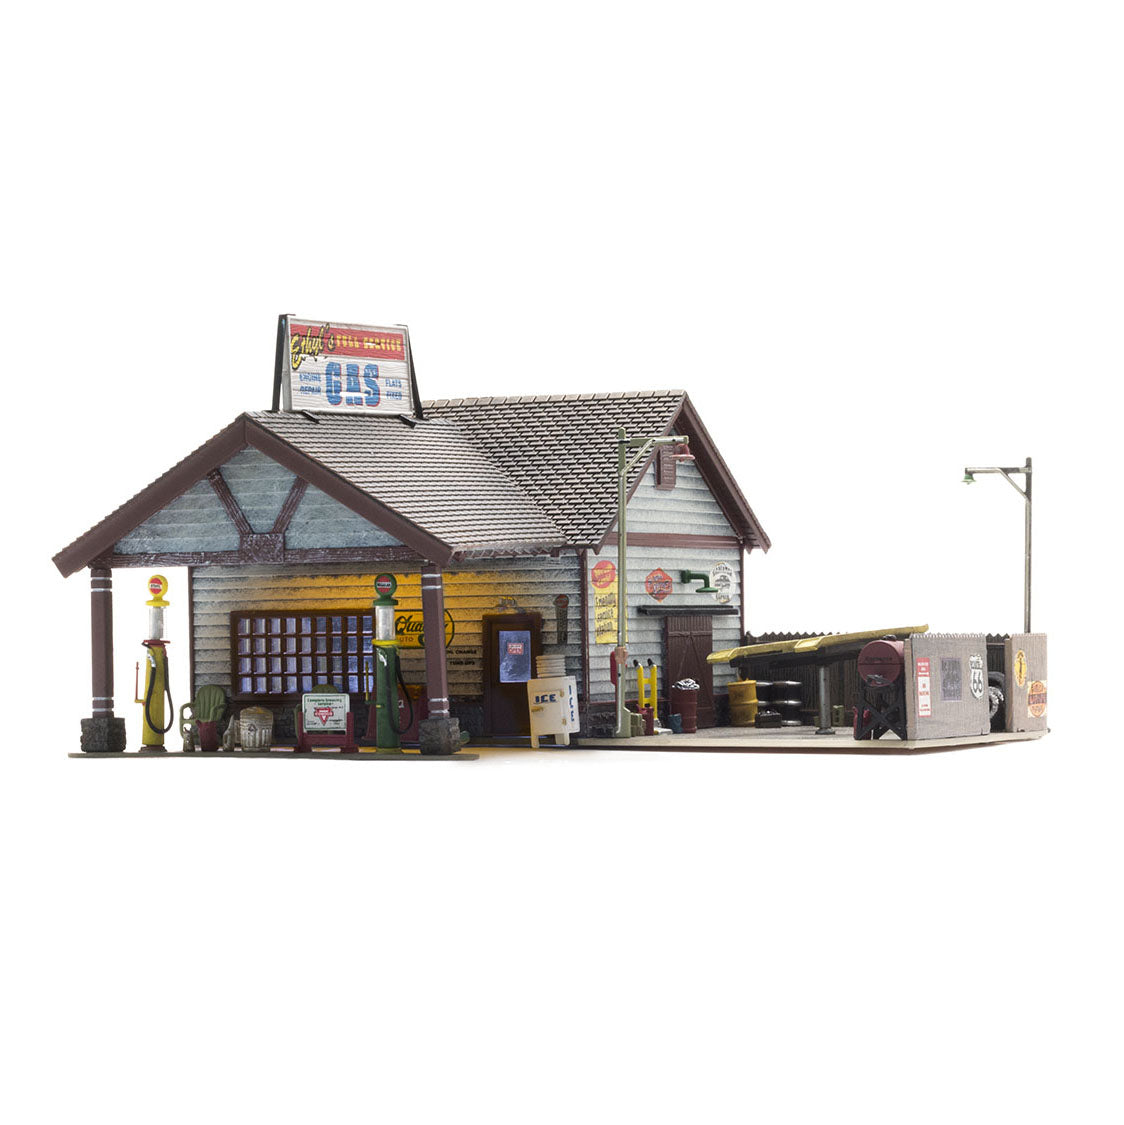 HO Scale: Ethyl's Gas & Service